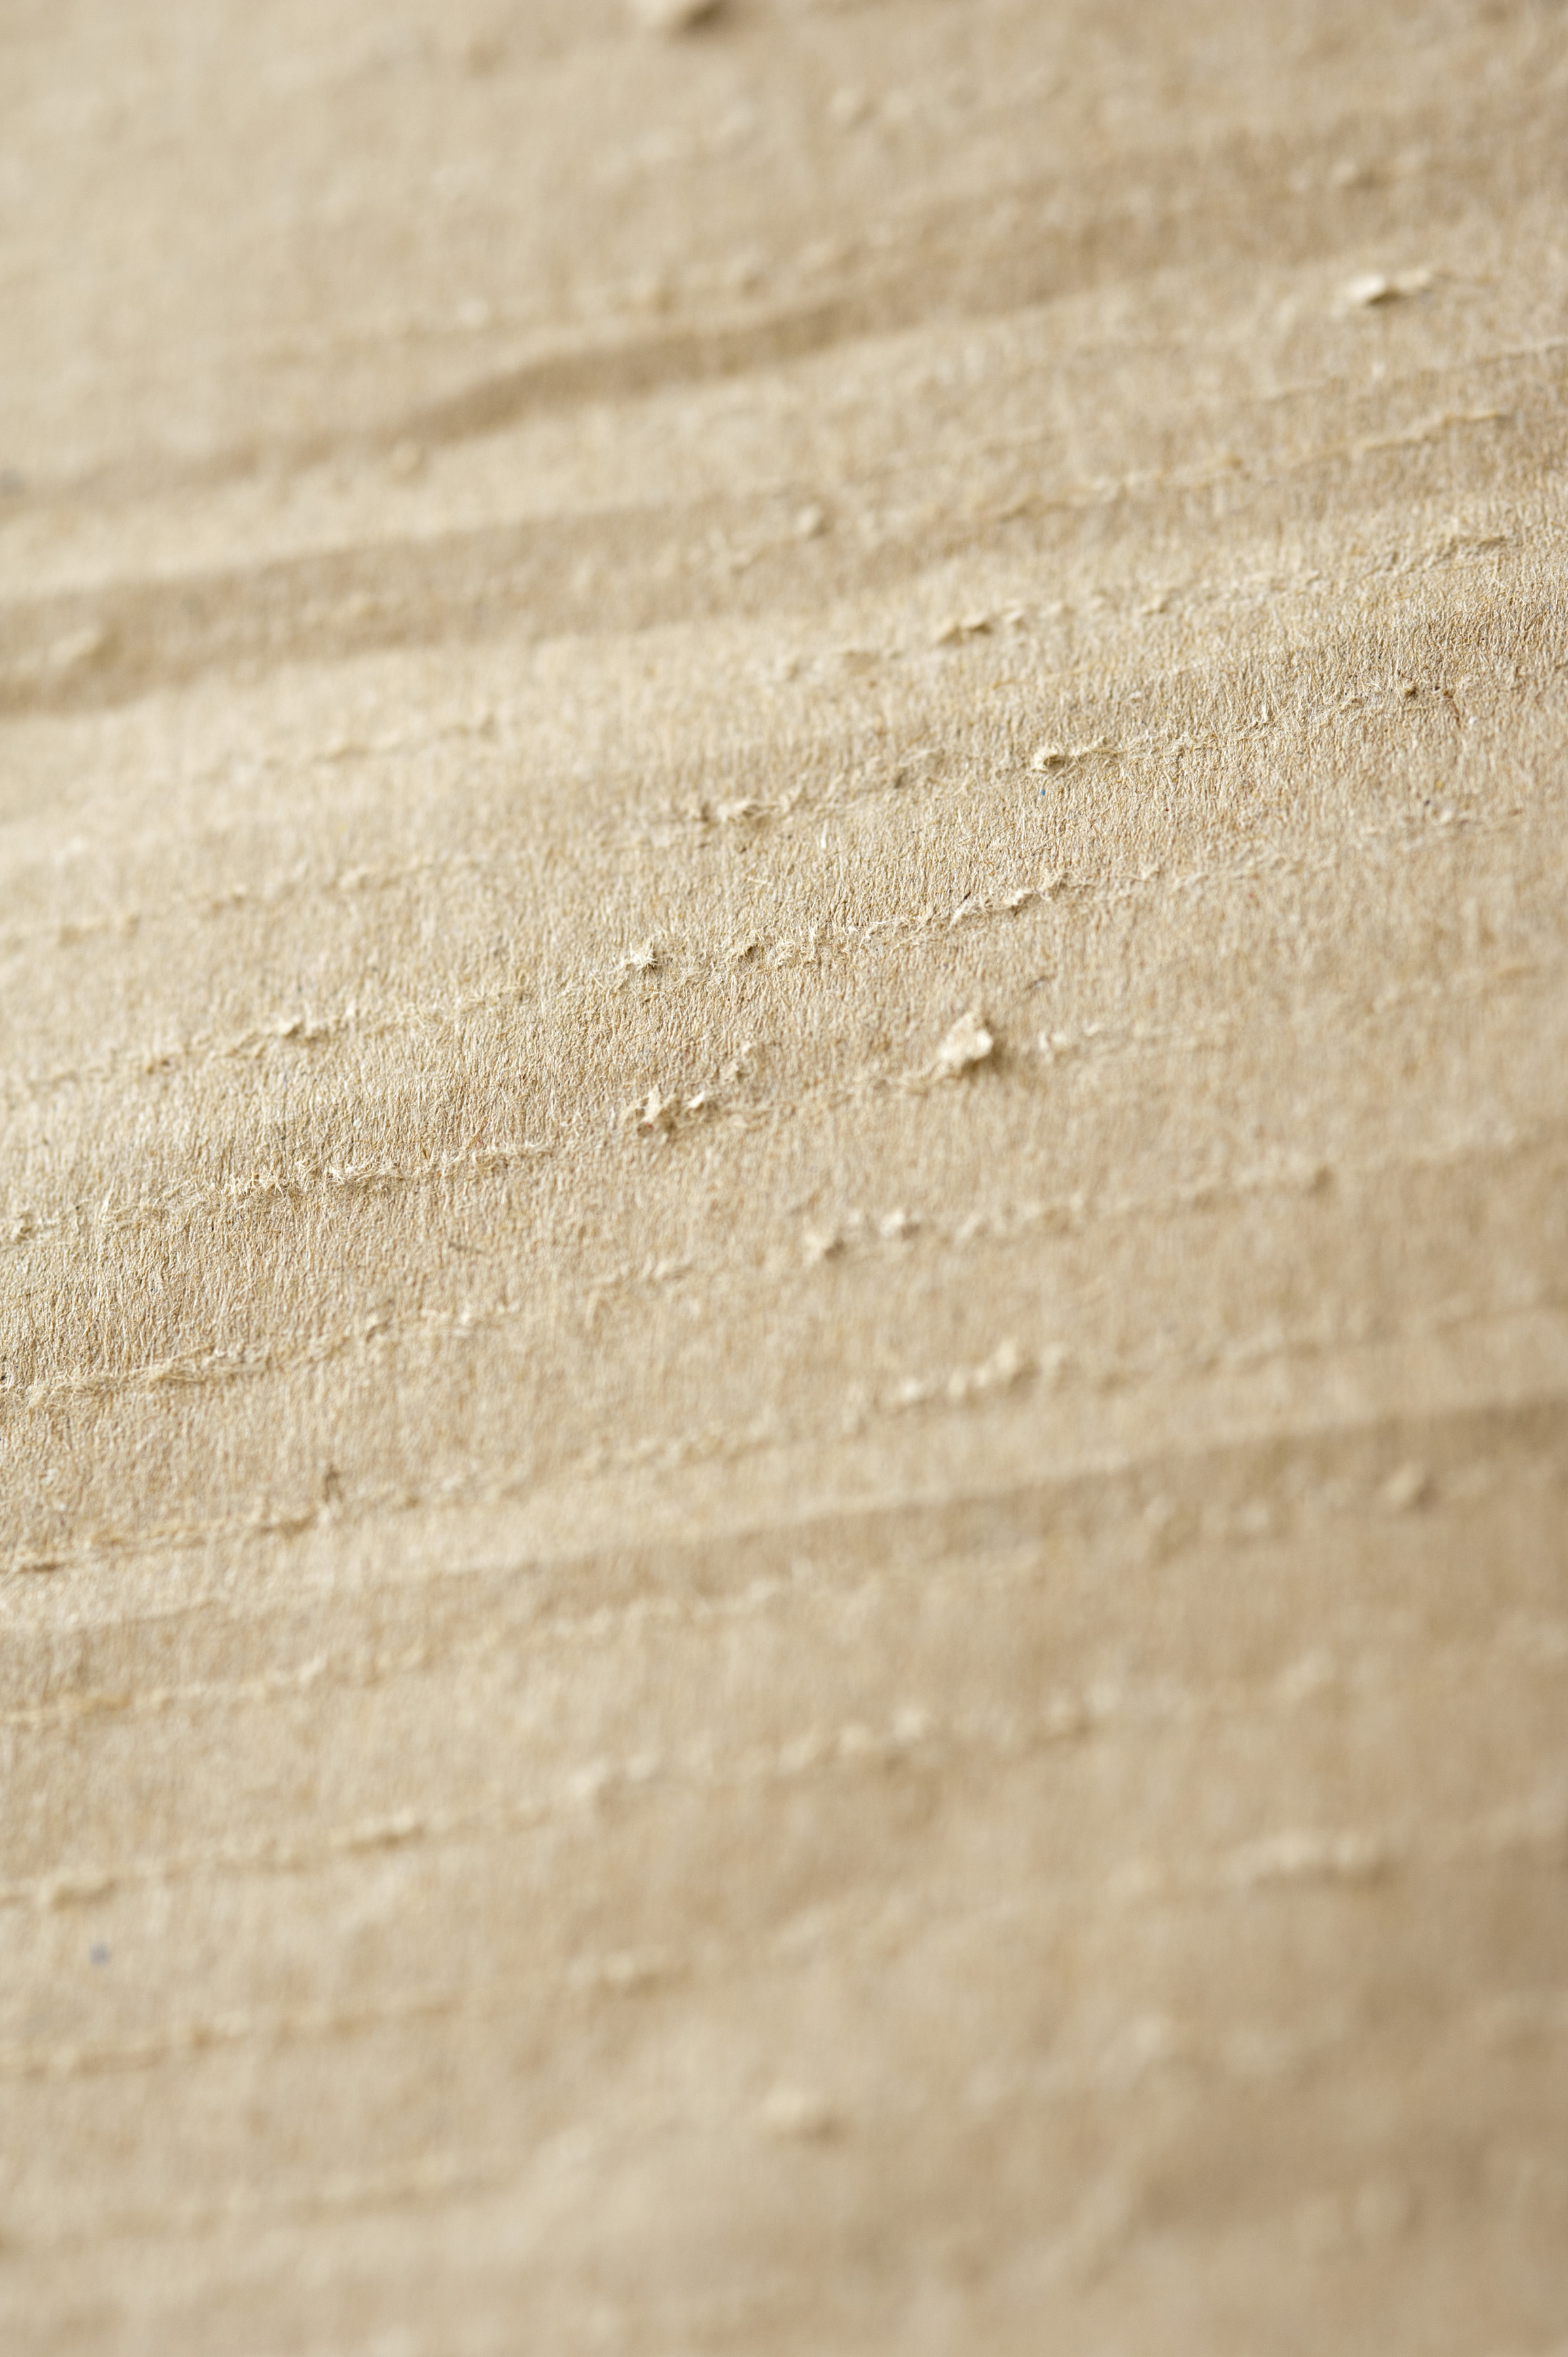 Finely cut wood close up as a background